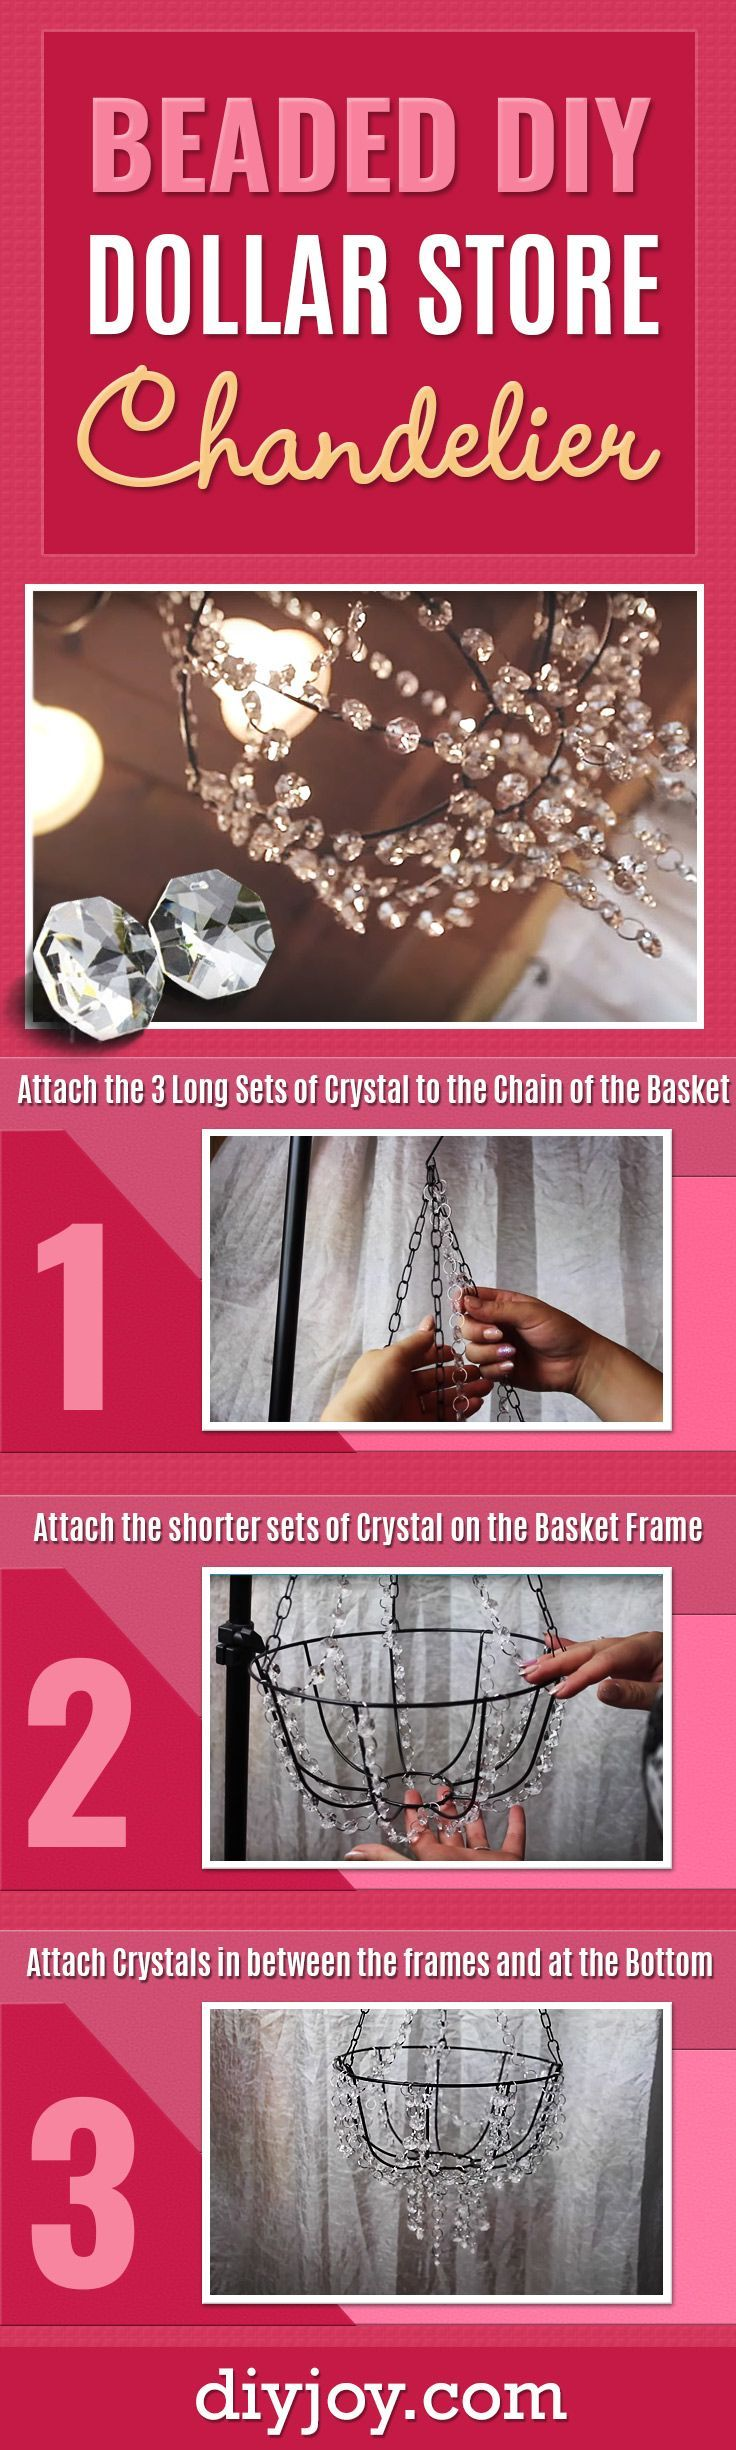 DIY Beaded Chandelier and Dollar Store Craft Ideas - Cheap Dollar Store Crafts and Home Decor Projects - Easy DIY Lighting Idea on A Budget